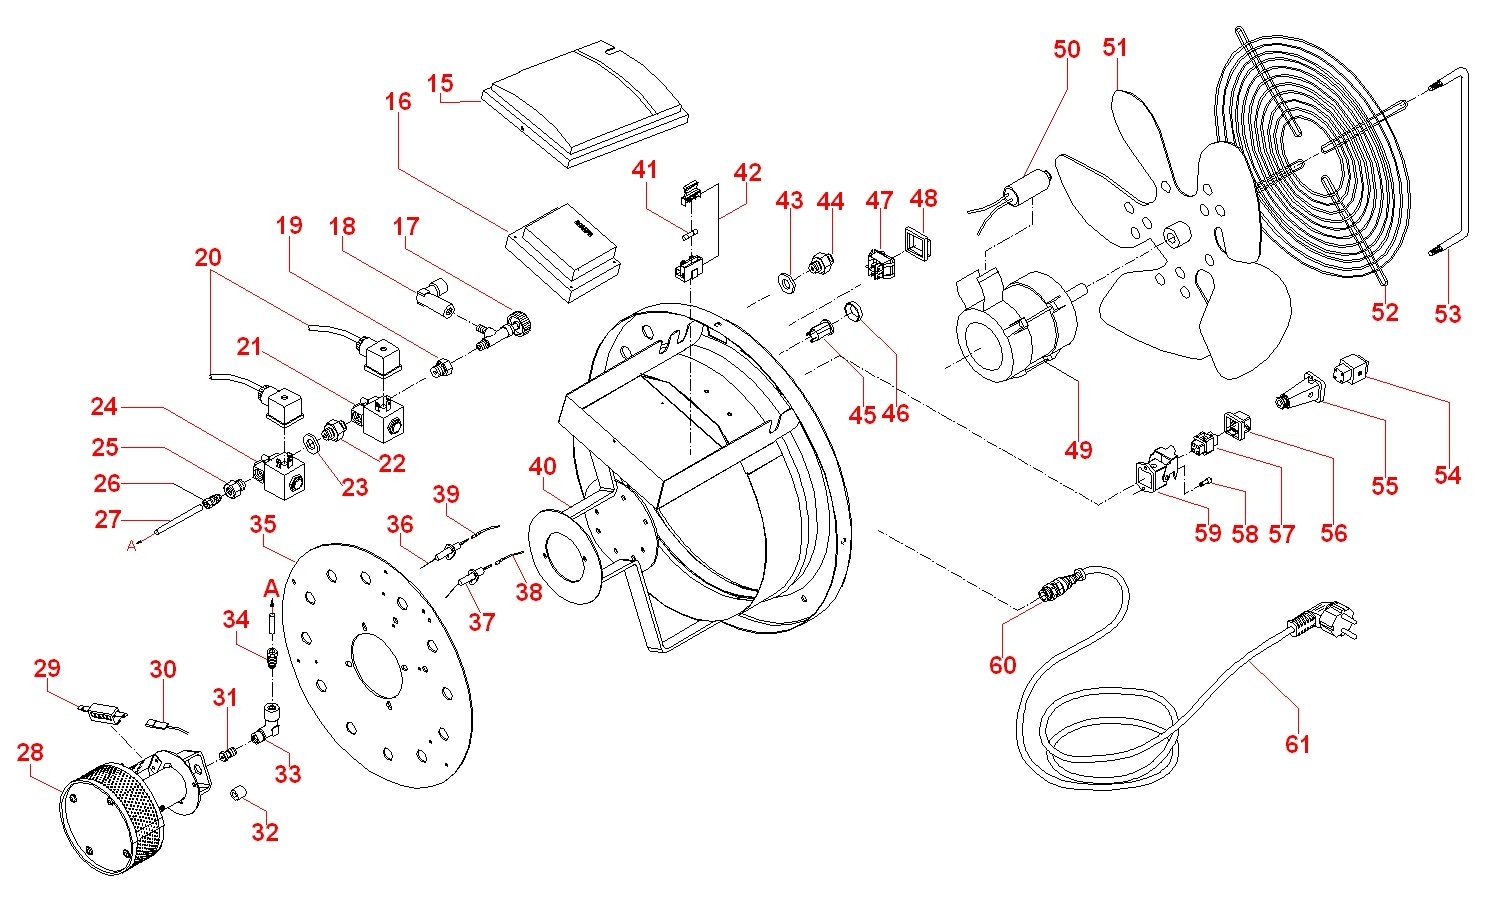 Munters Sial Argos 100 Ae Exploded View